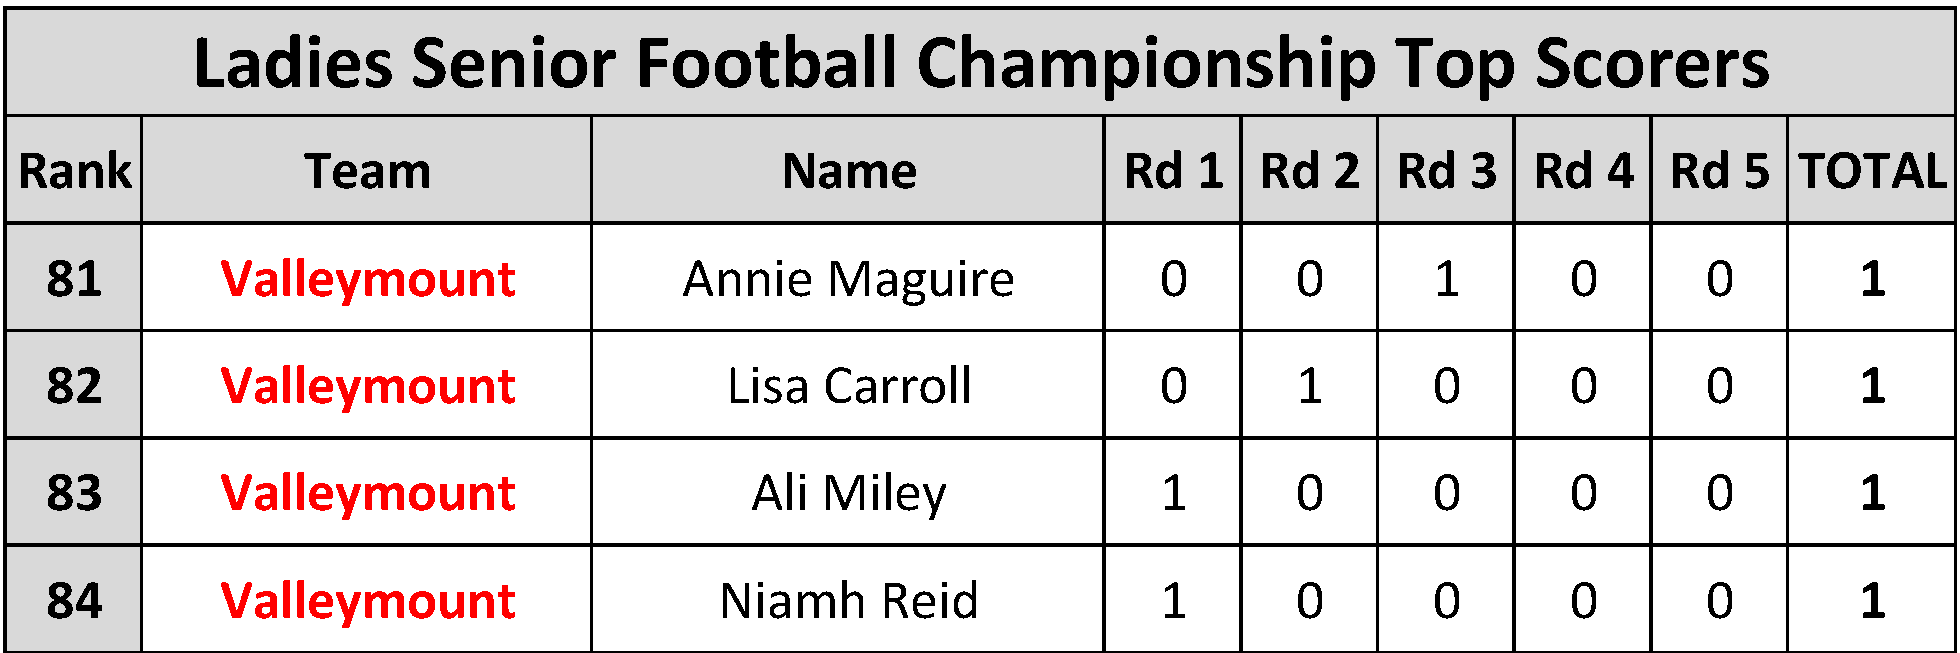 top-scorers_page_096.png